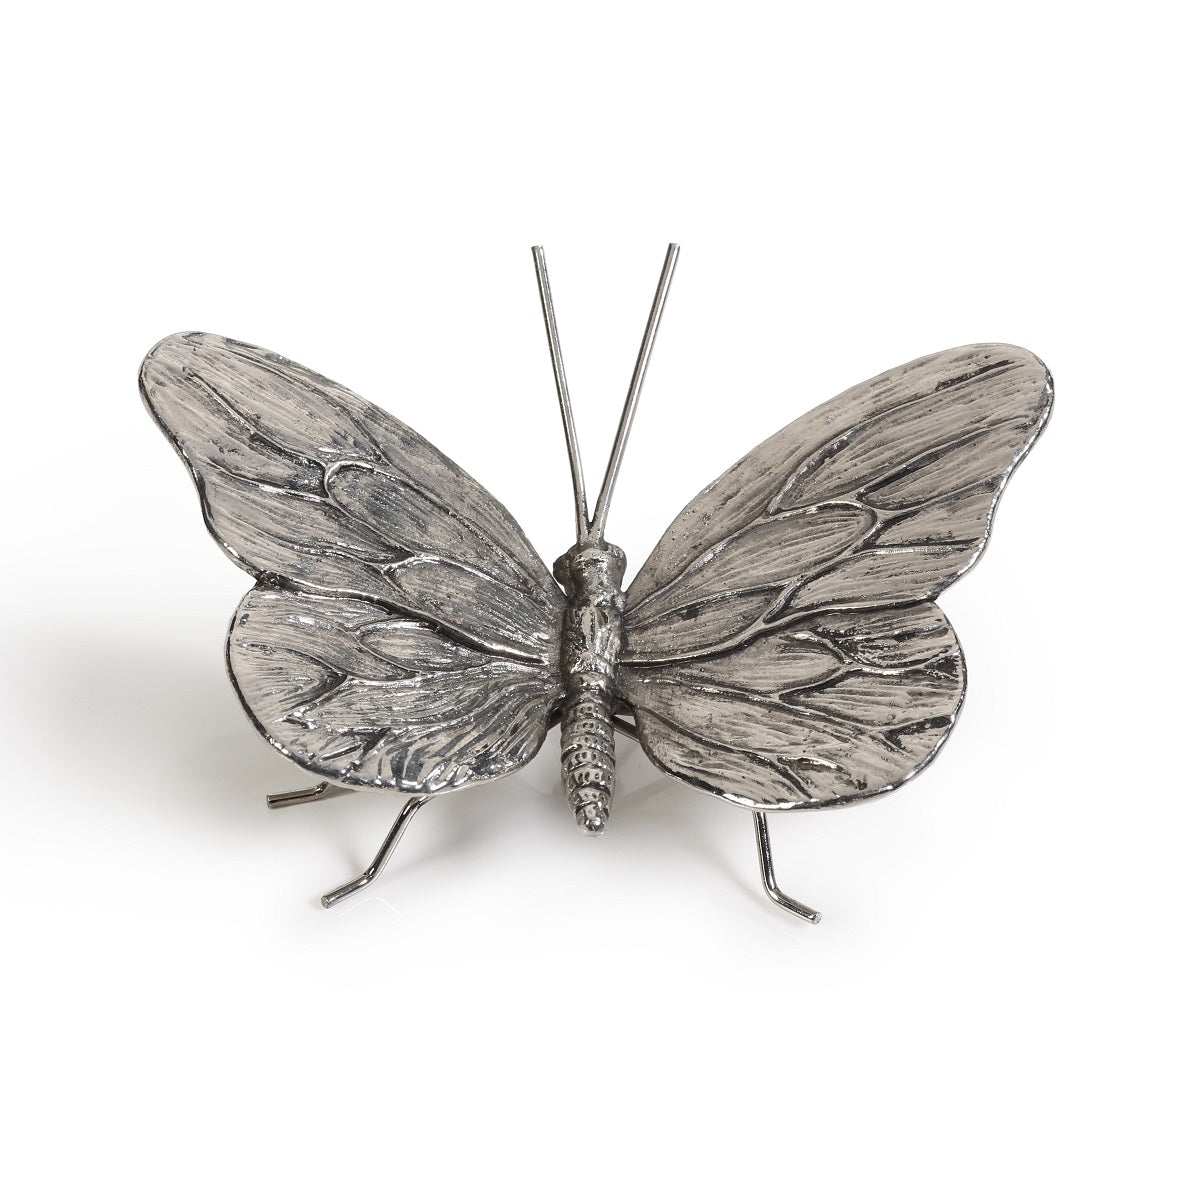 Decorative Antique Pewter Butterfly - CARLYLE AVENUE